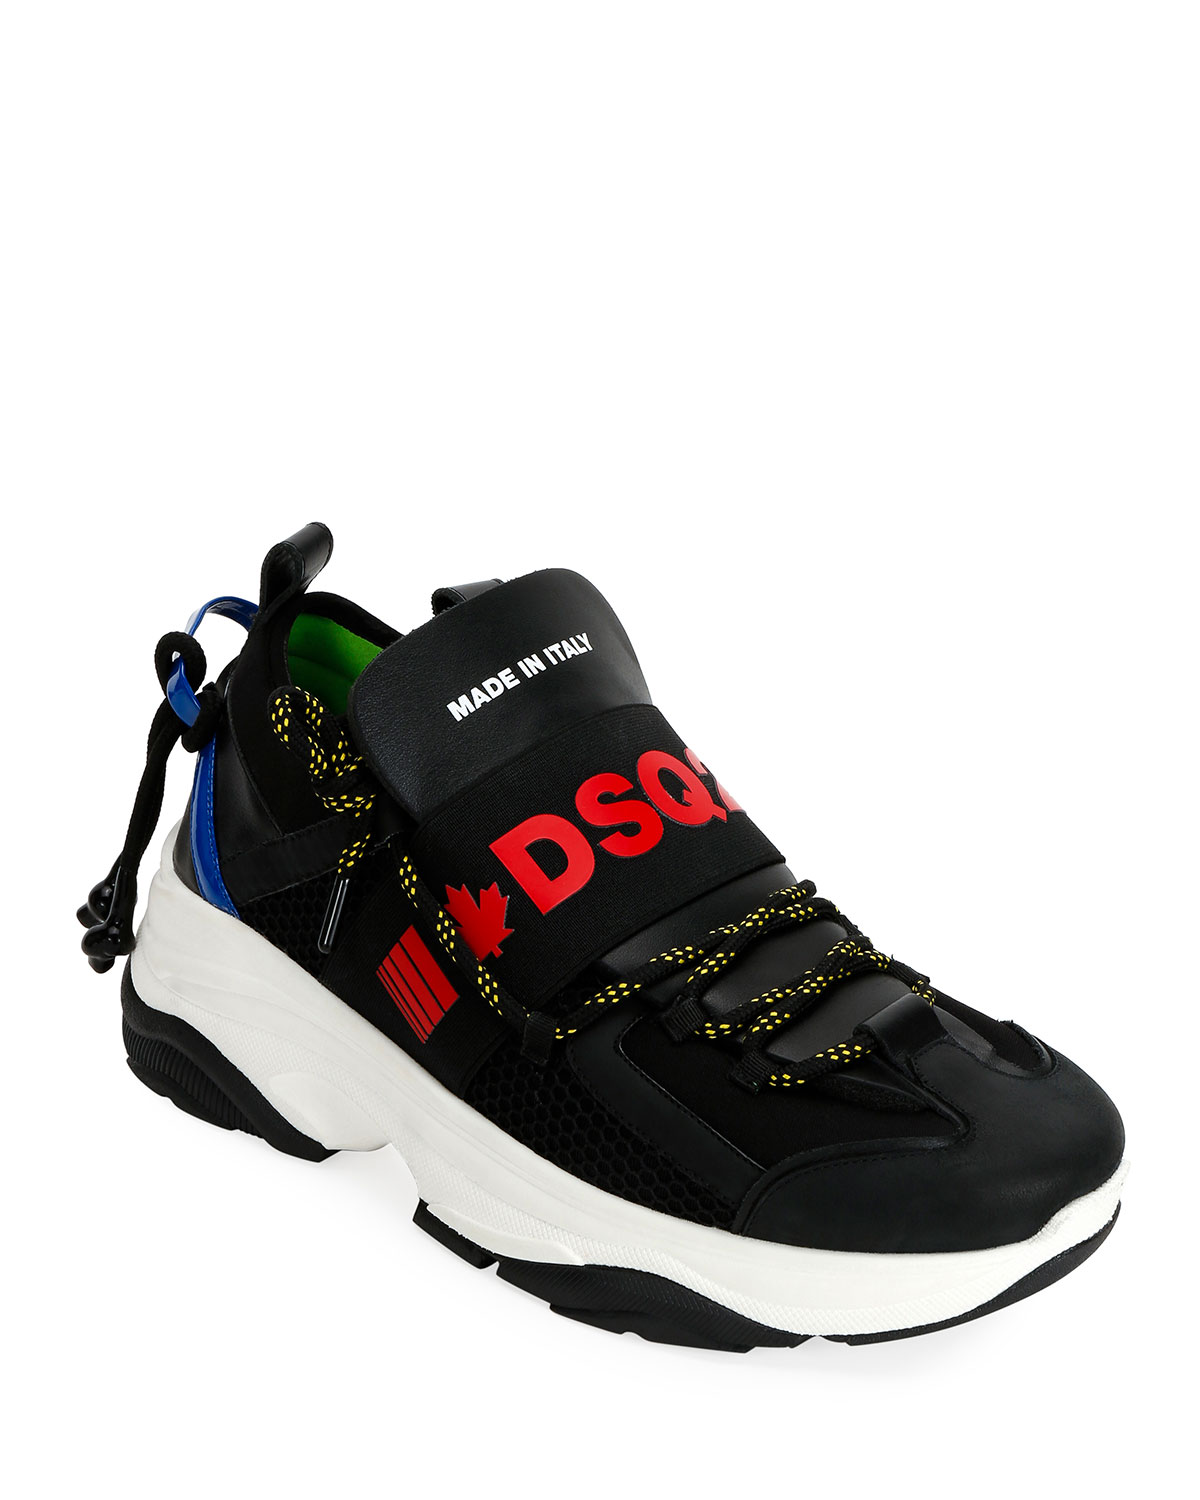 Men's Logo Banded Runner Sneakers by Dsquared2